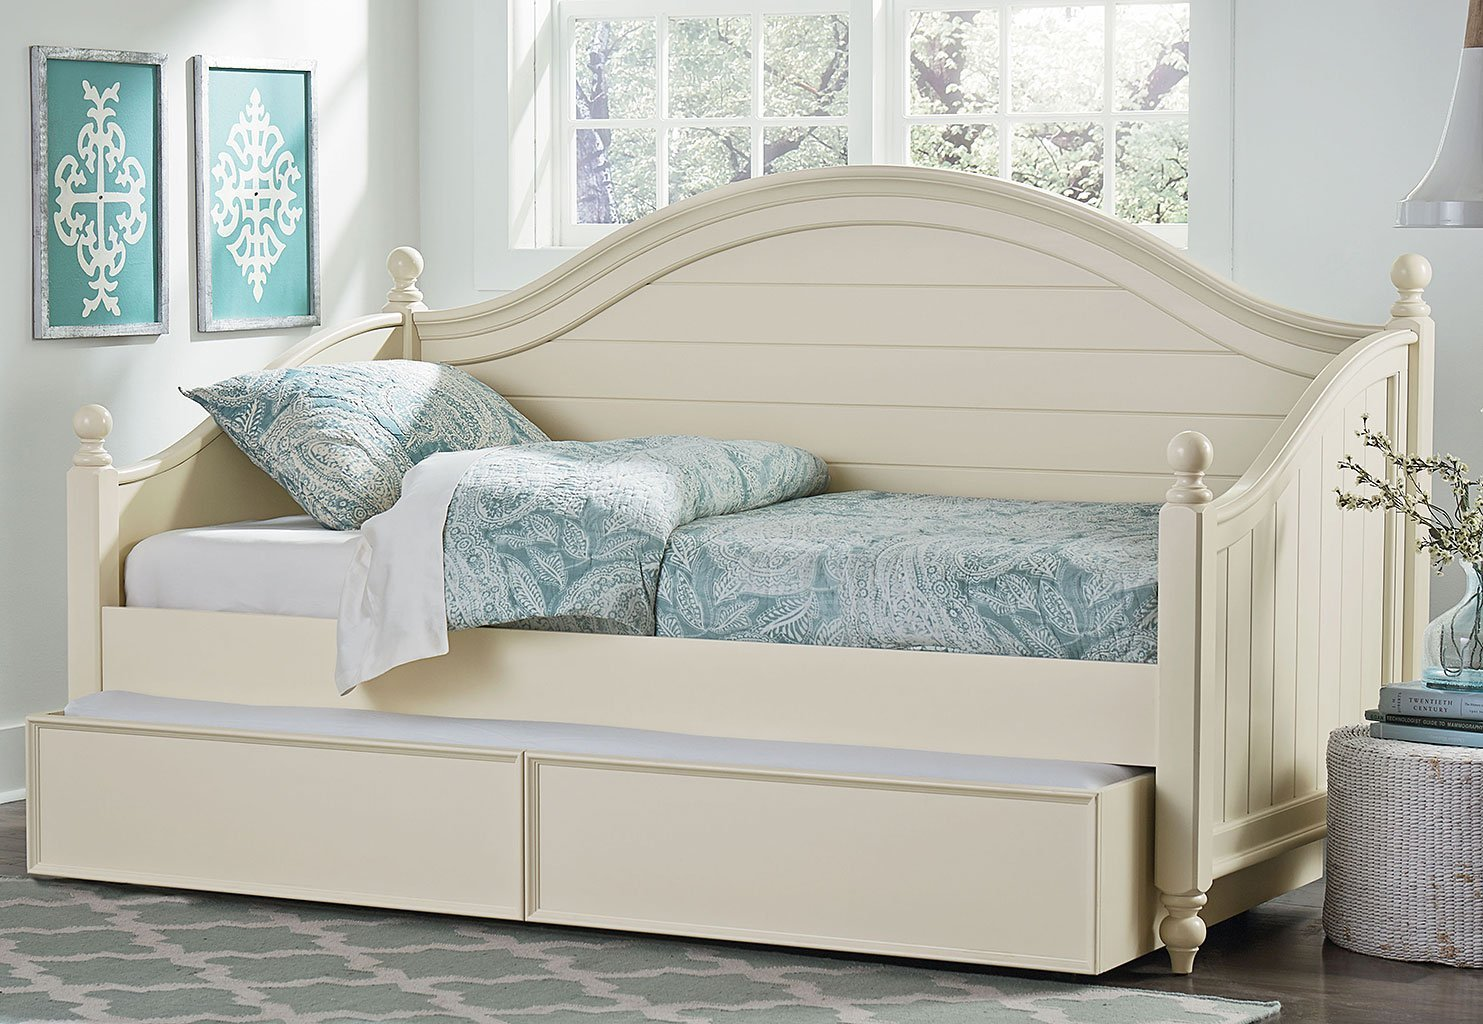 Best Camellia Daybed Bedroom Set Marshmallow White Standard With Pictures